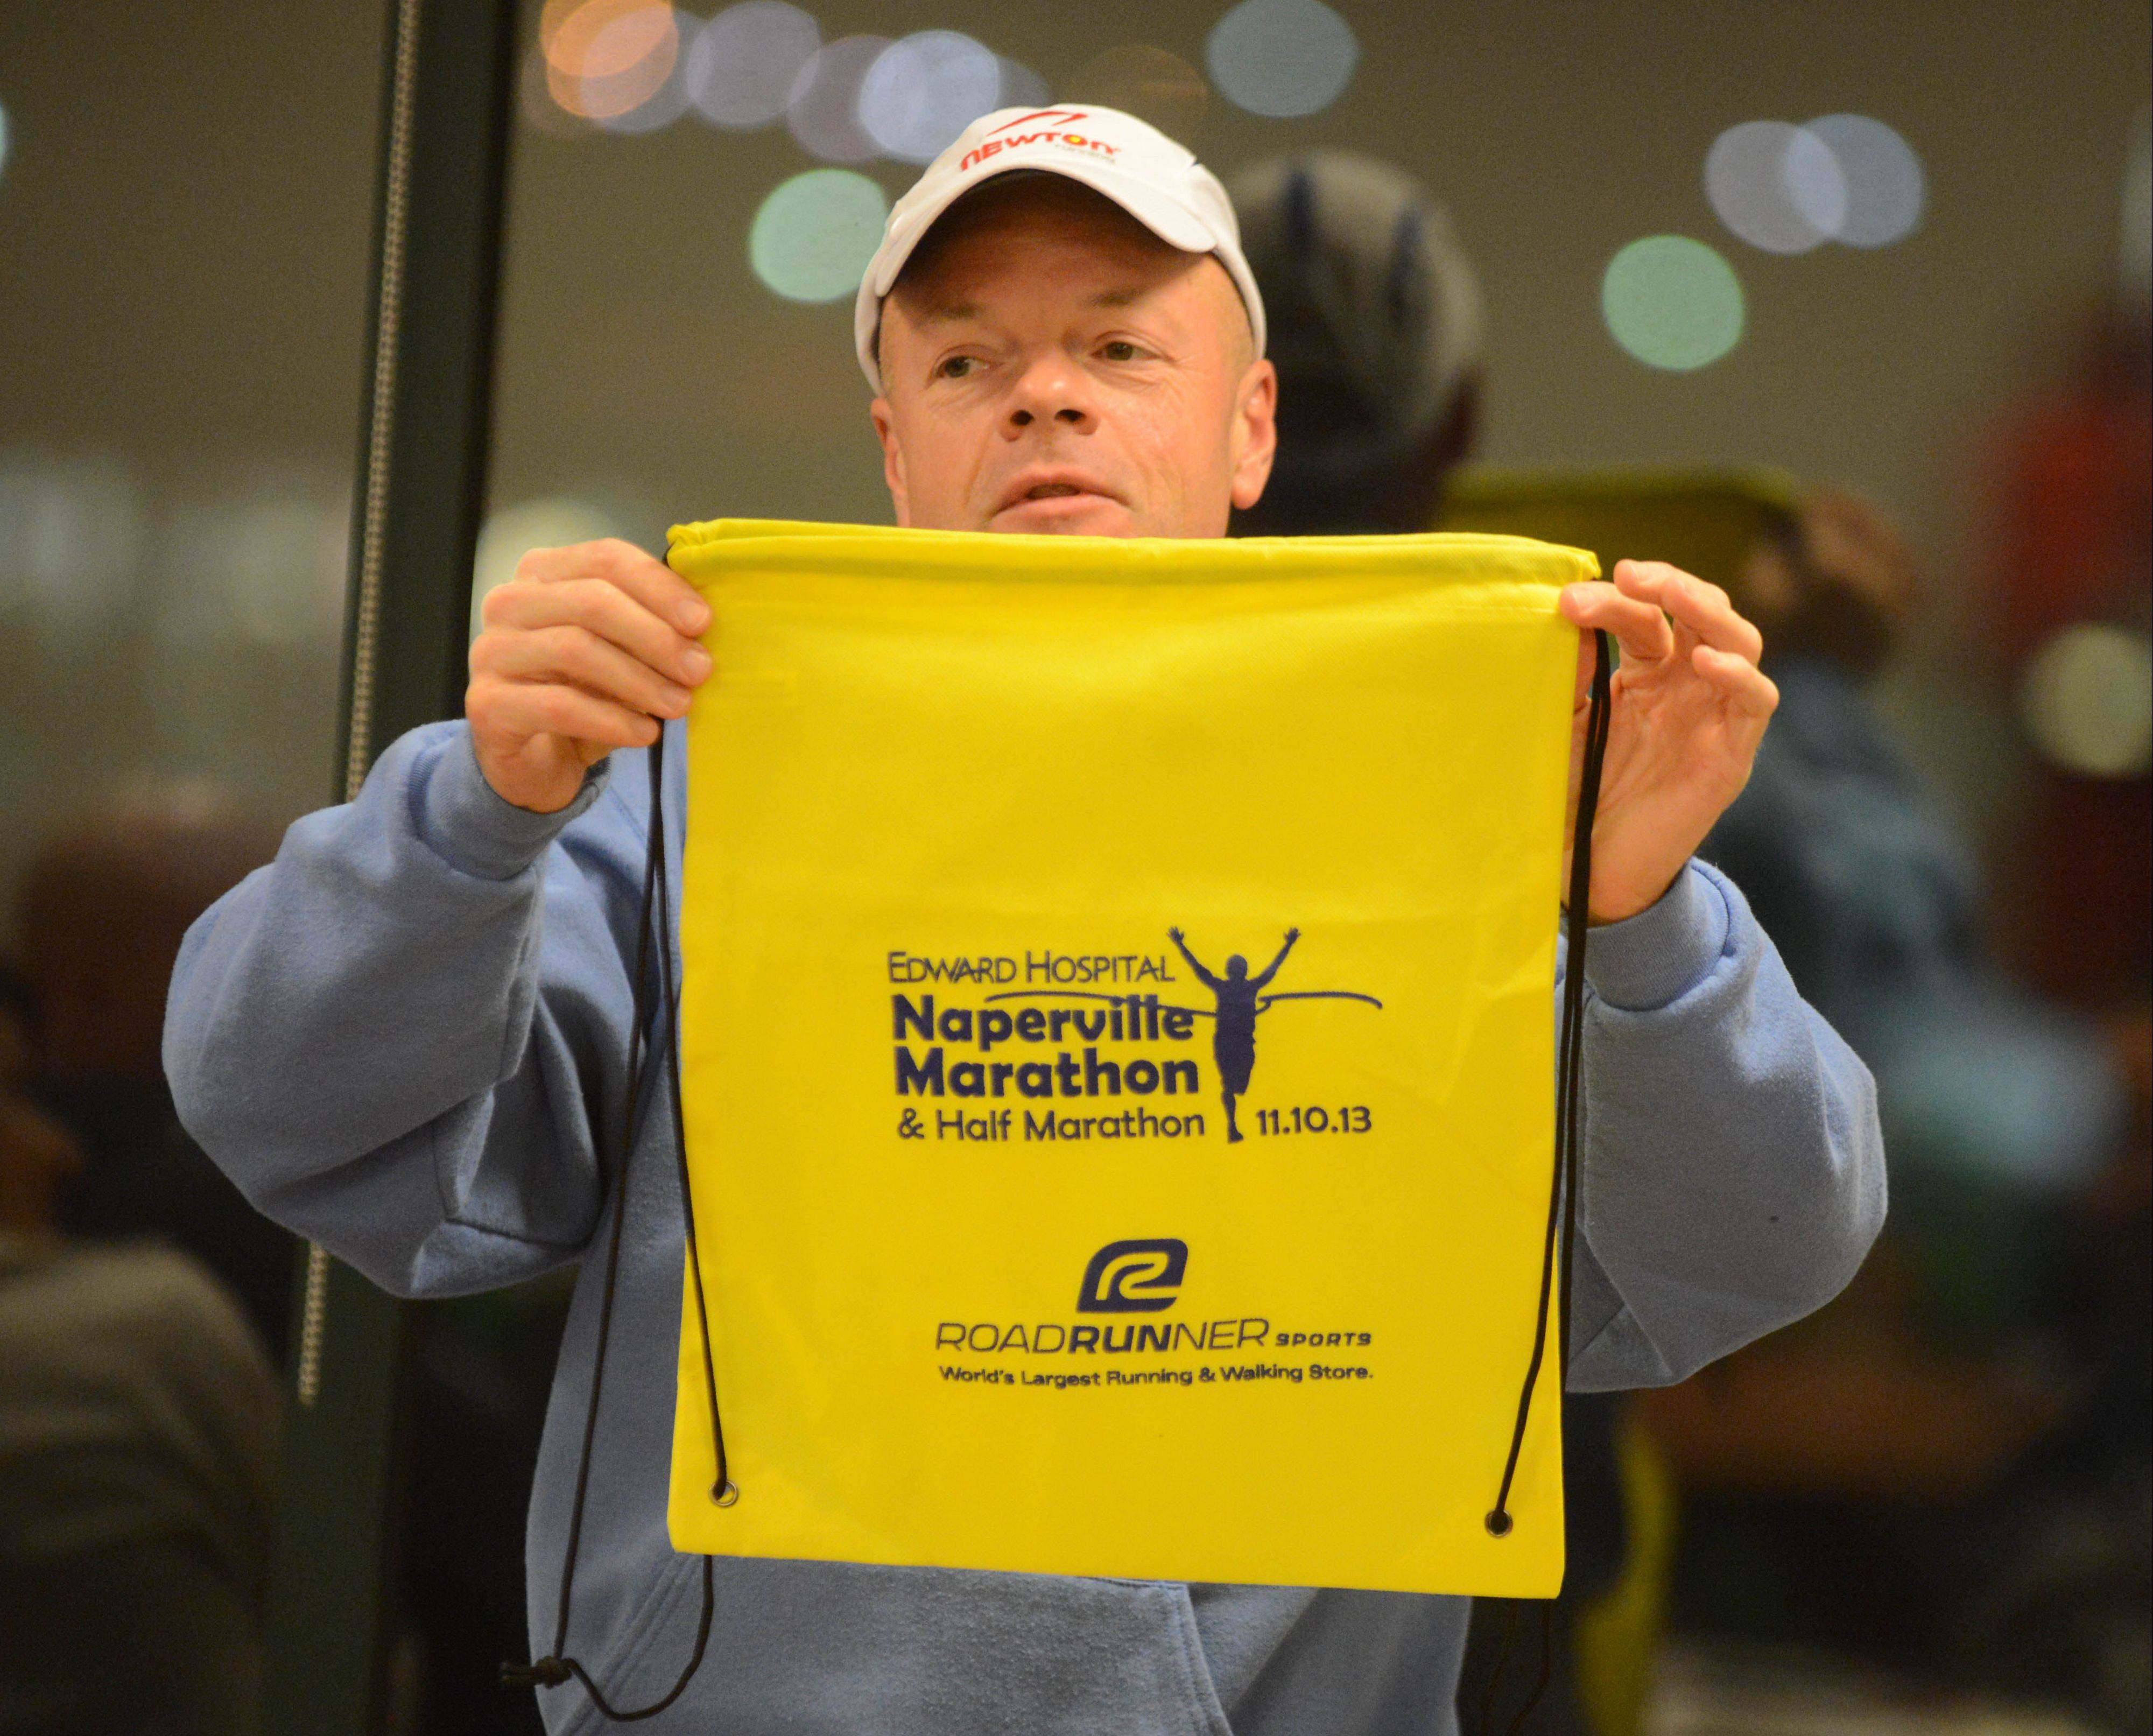 A 'world-class experience' for runners at Naperville marathon